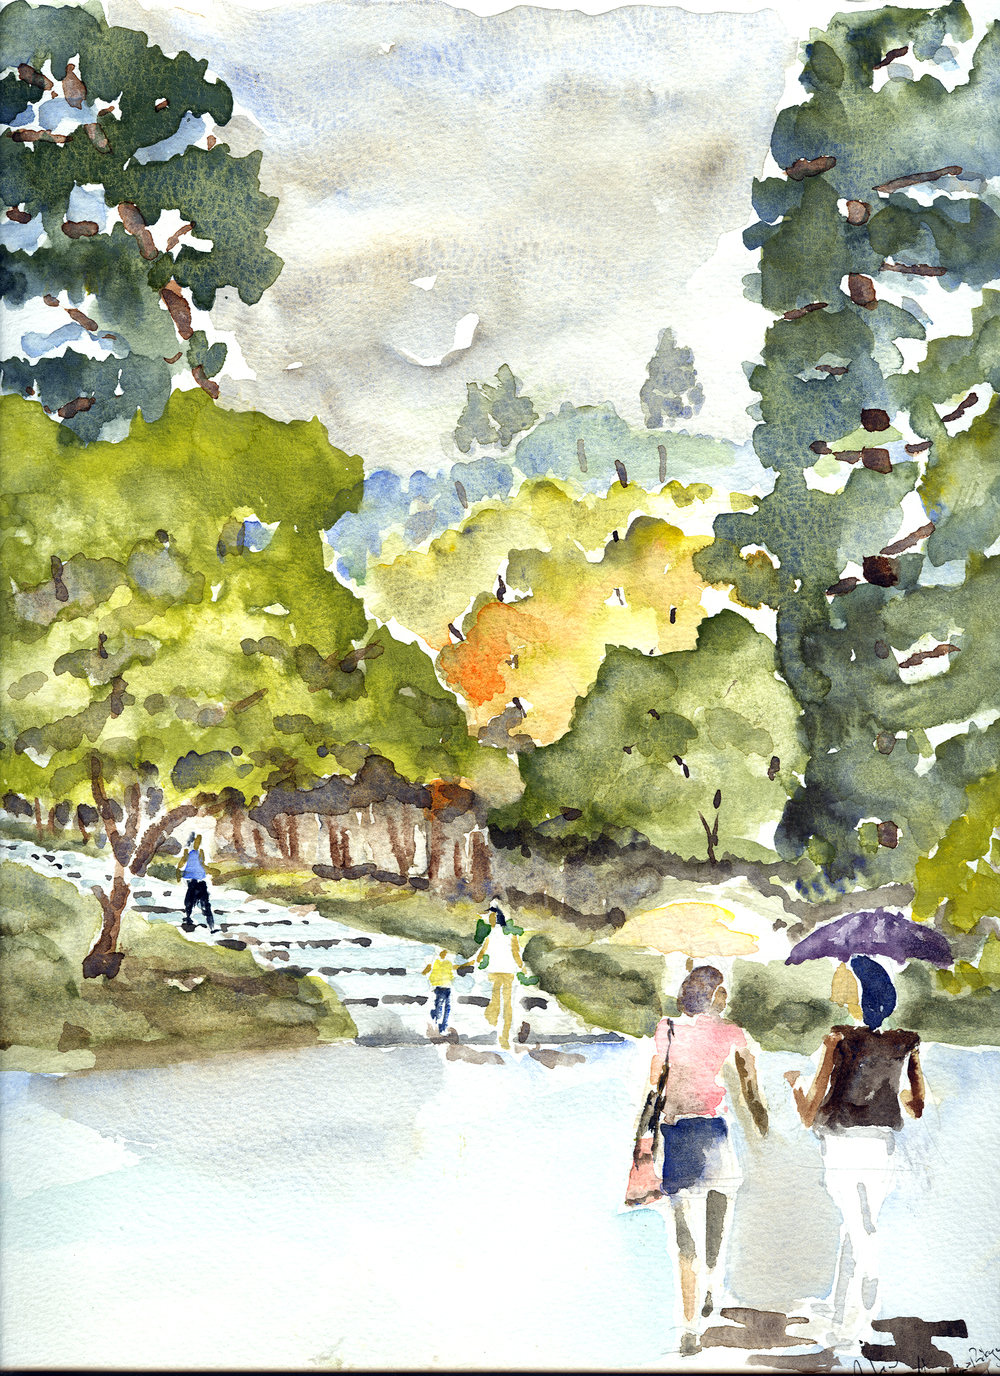 watercolor_010.jpg